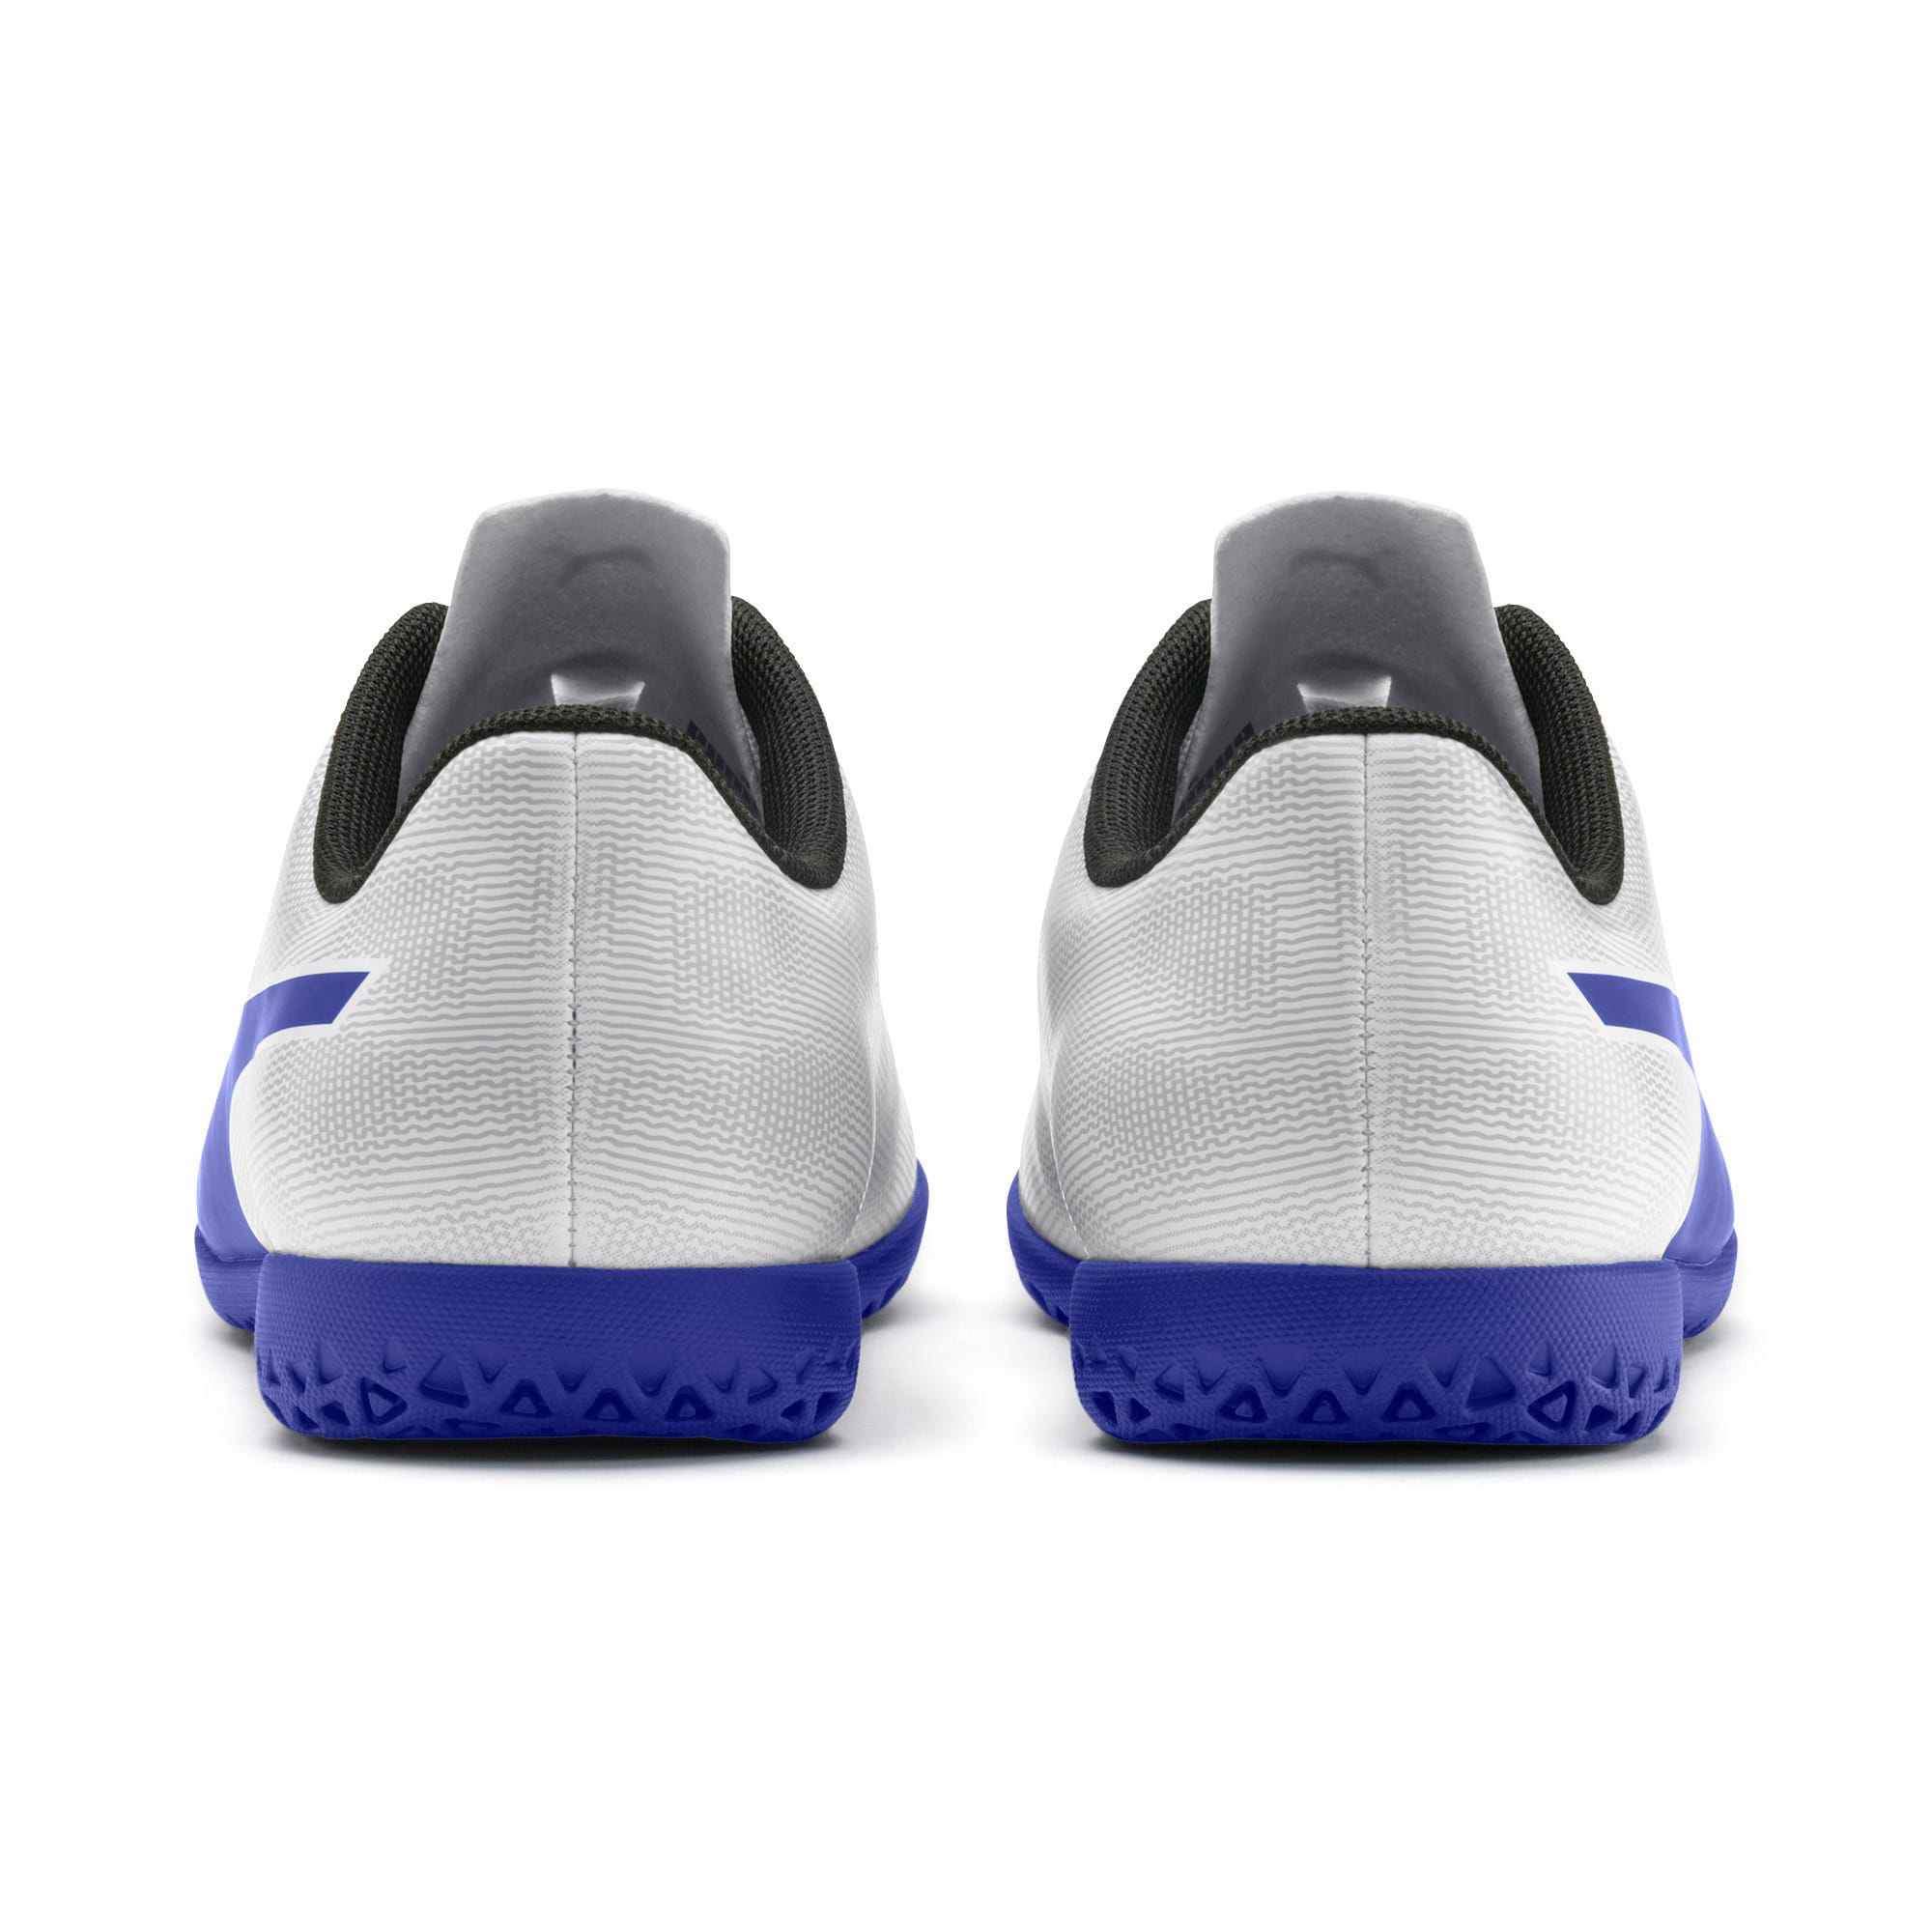 Thumbnail 4 of Rapido IT Youth Football Boots, White-Royal Blue-Light Gray, medium-IND